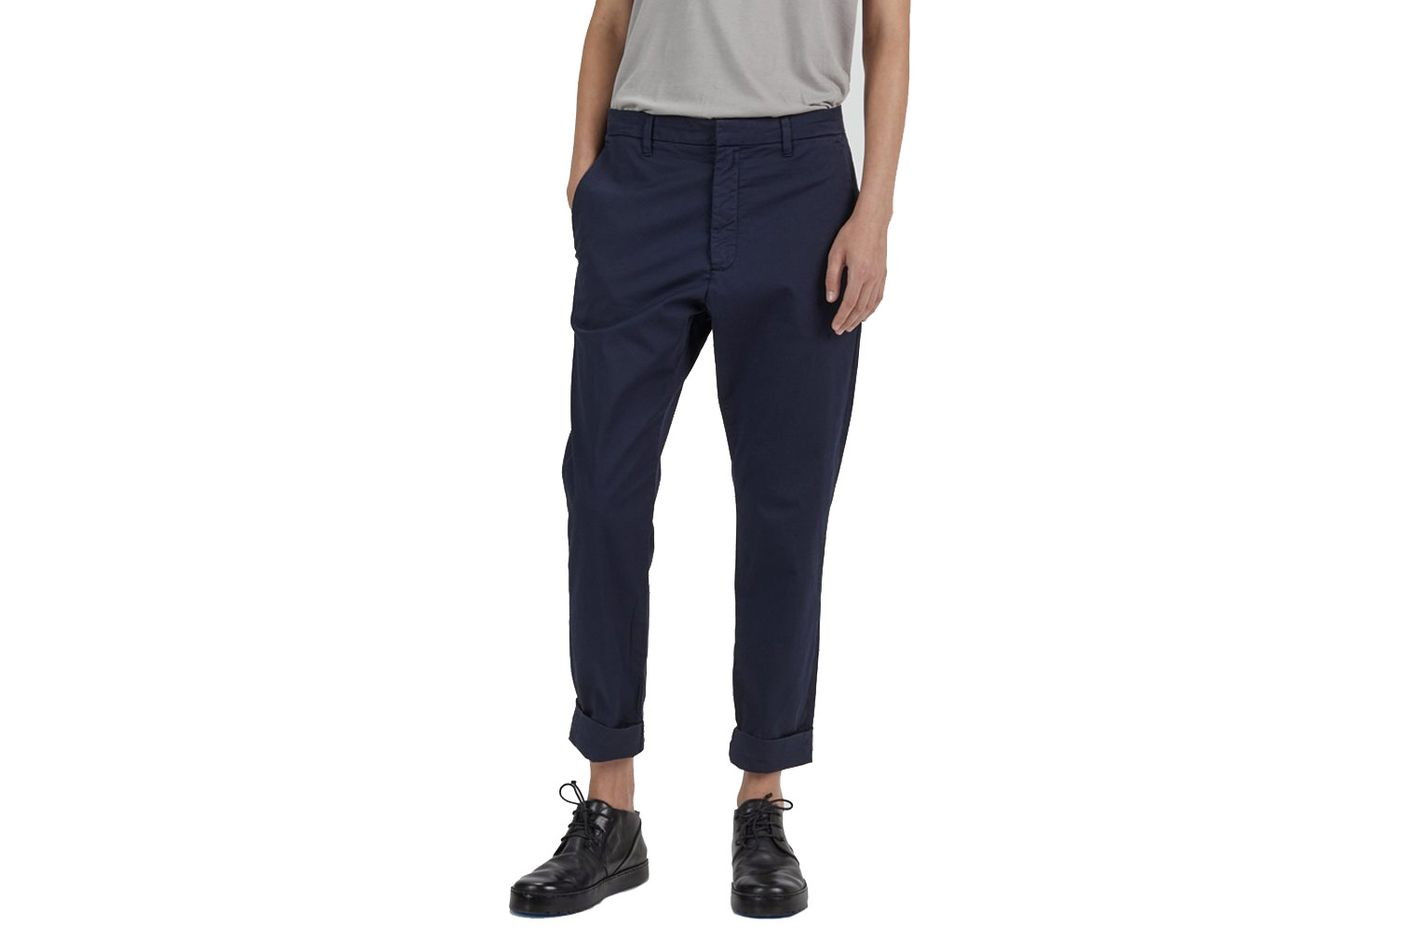 Hope News Trouser in Navy